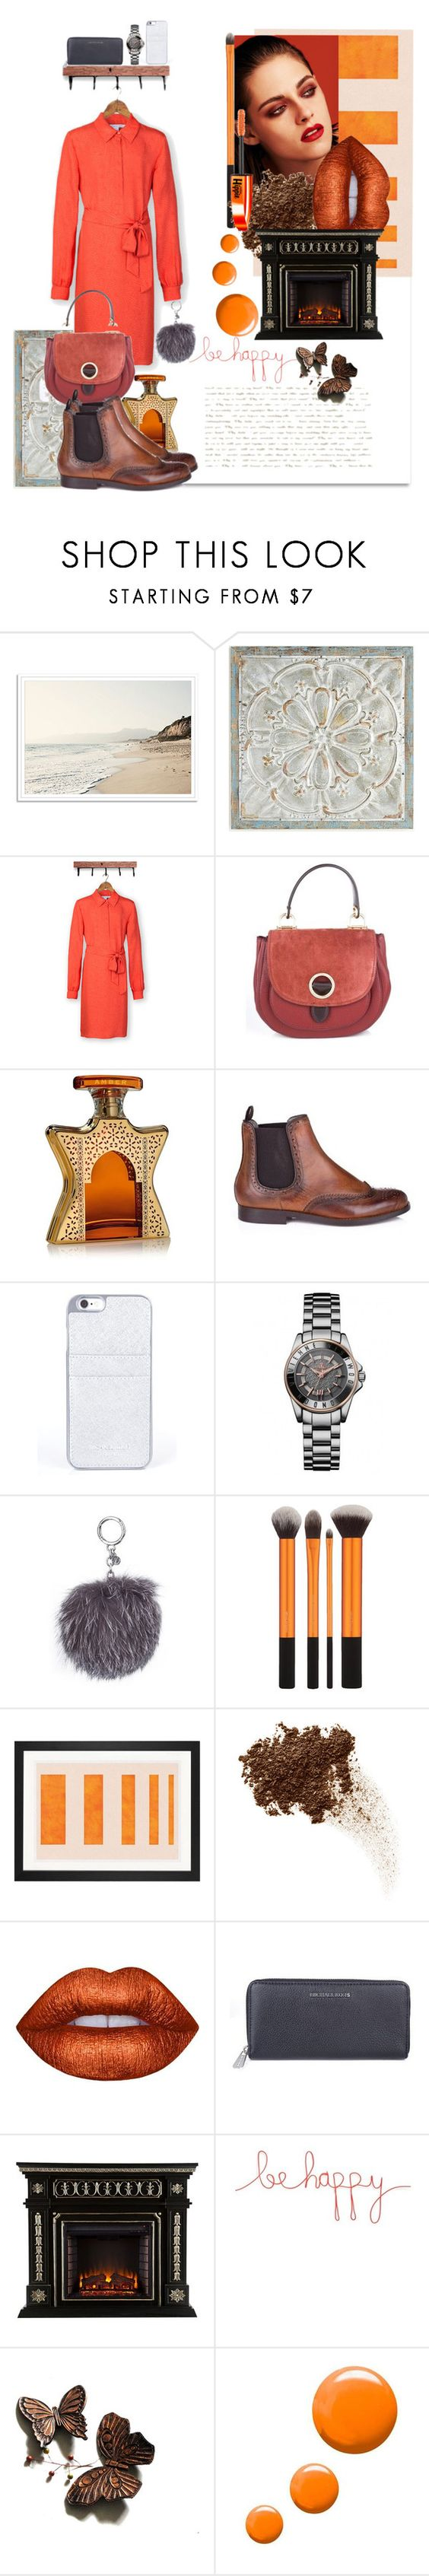 """""""Falling for Orange"""" by zeeandcoltd ❤ liked on Polyvore featuring Pier 1 Imports, Bond No. 9, Chanel, Natural Life, Topshop and L'Oréal Paris"""